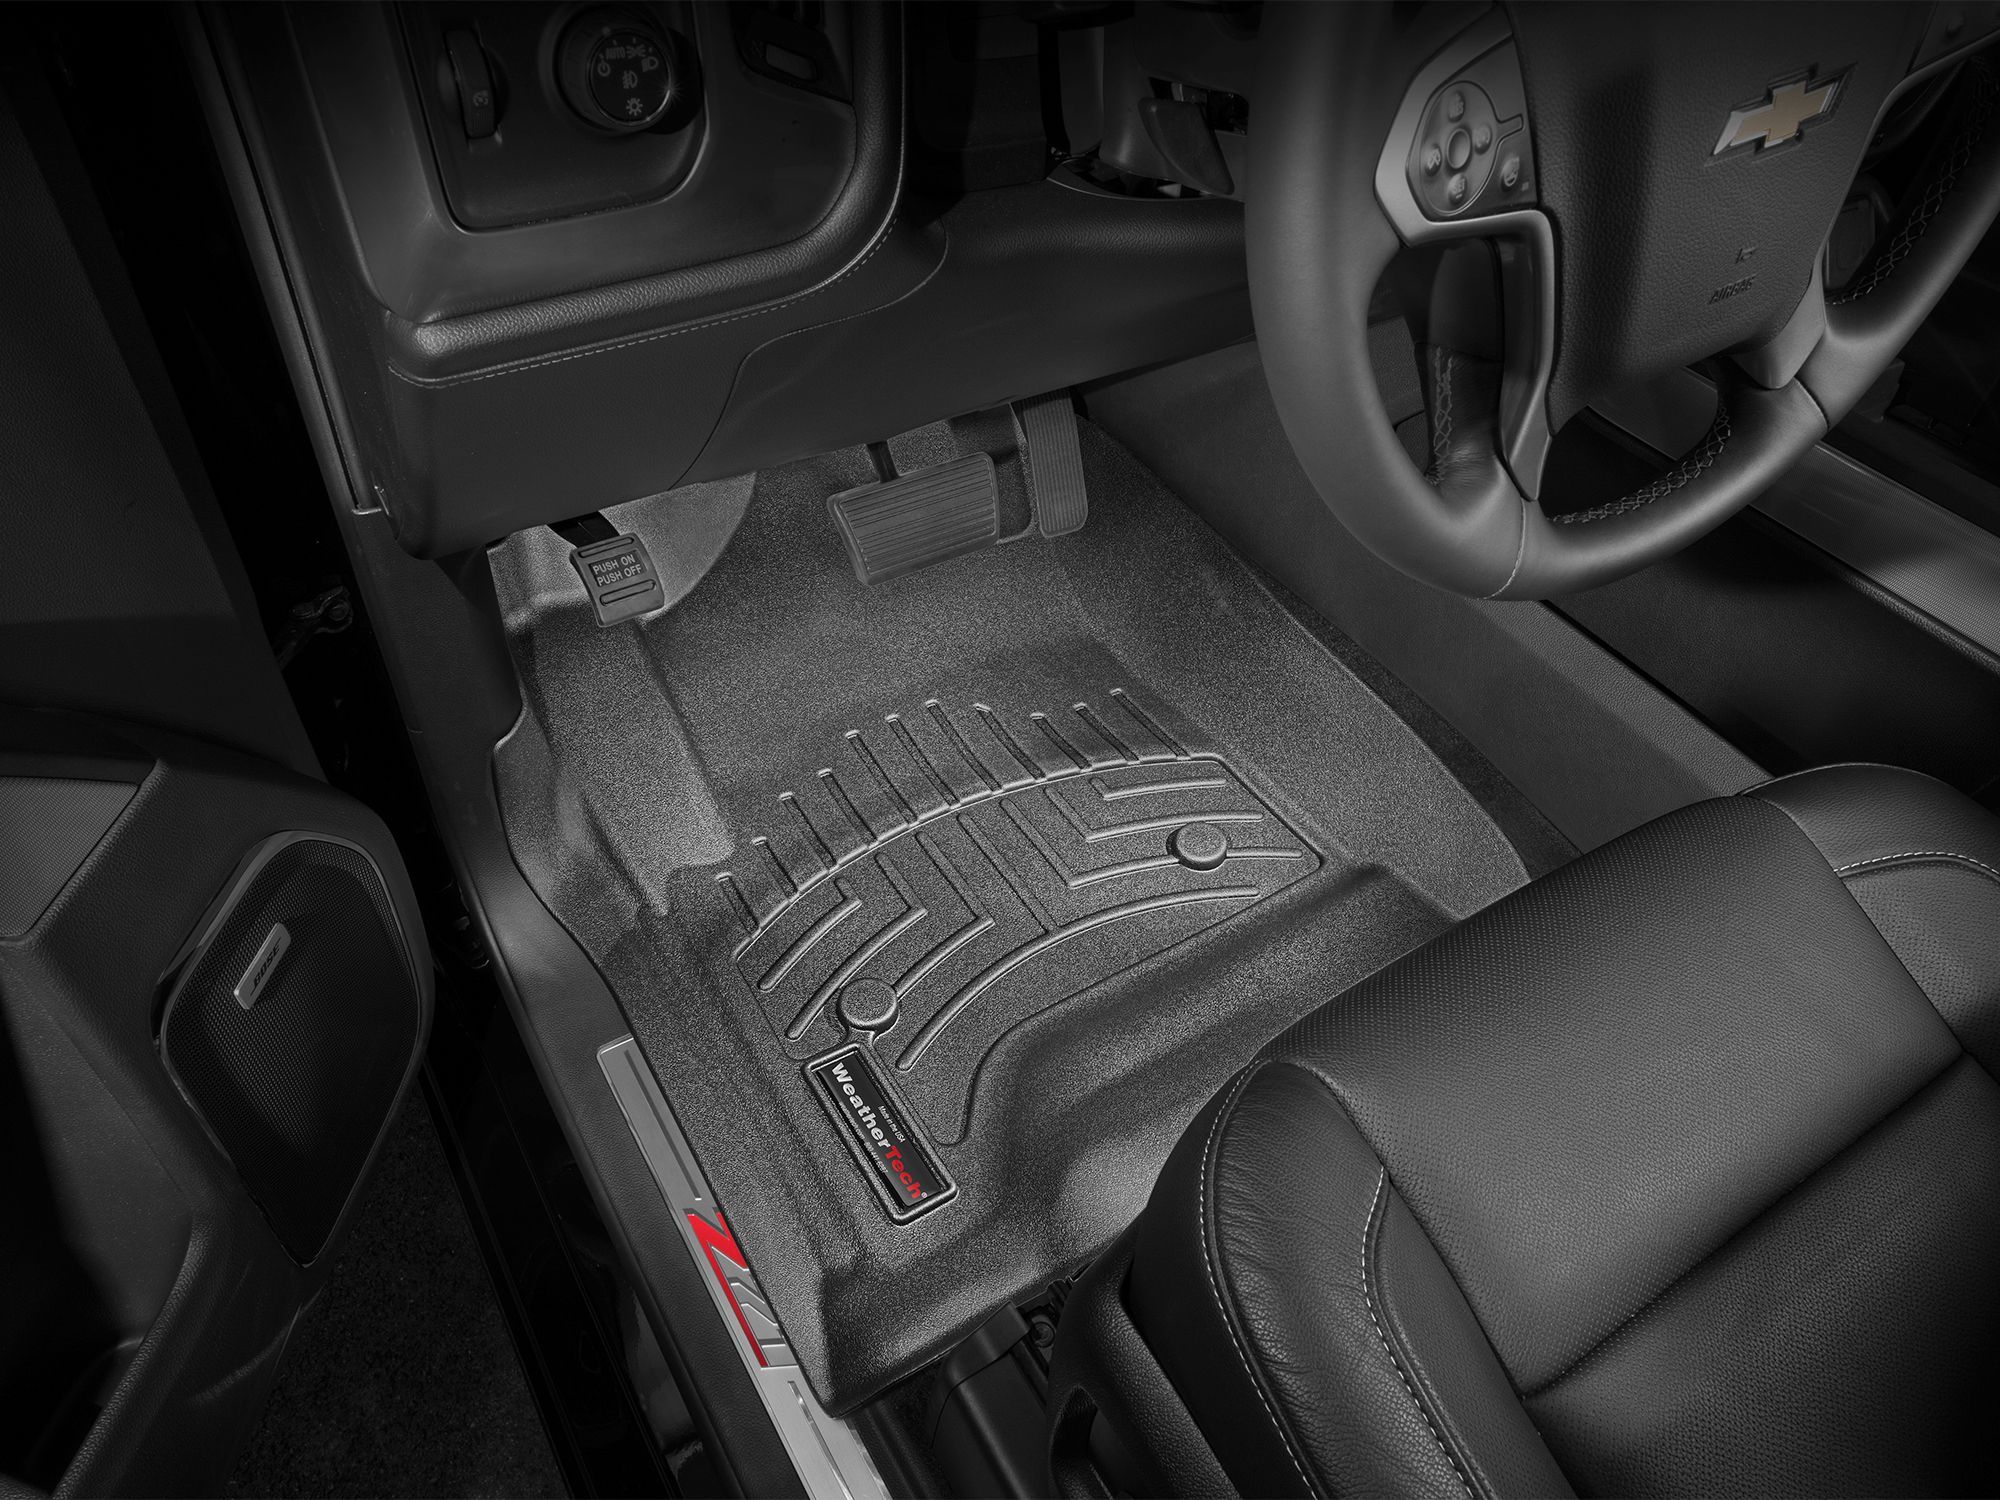 Weathertech floor mats okc - 2014 Chevy Silverado Weathertech Floorliners Each Liner Is Digitally Measured To Fit The Exact Dimensions Of Your Chevy Silverado Interior